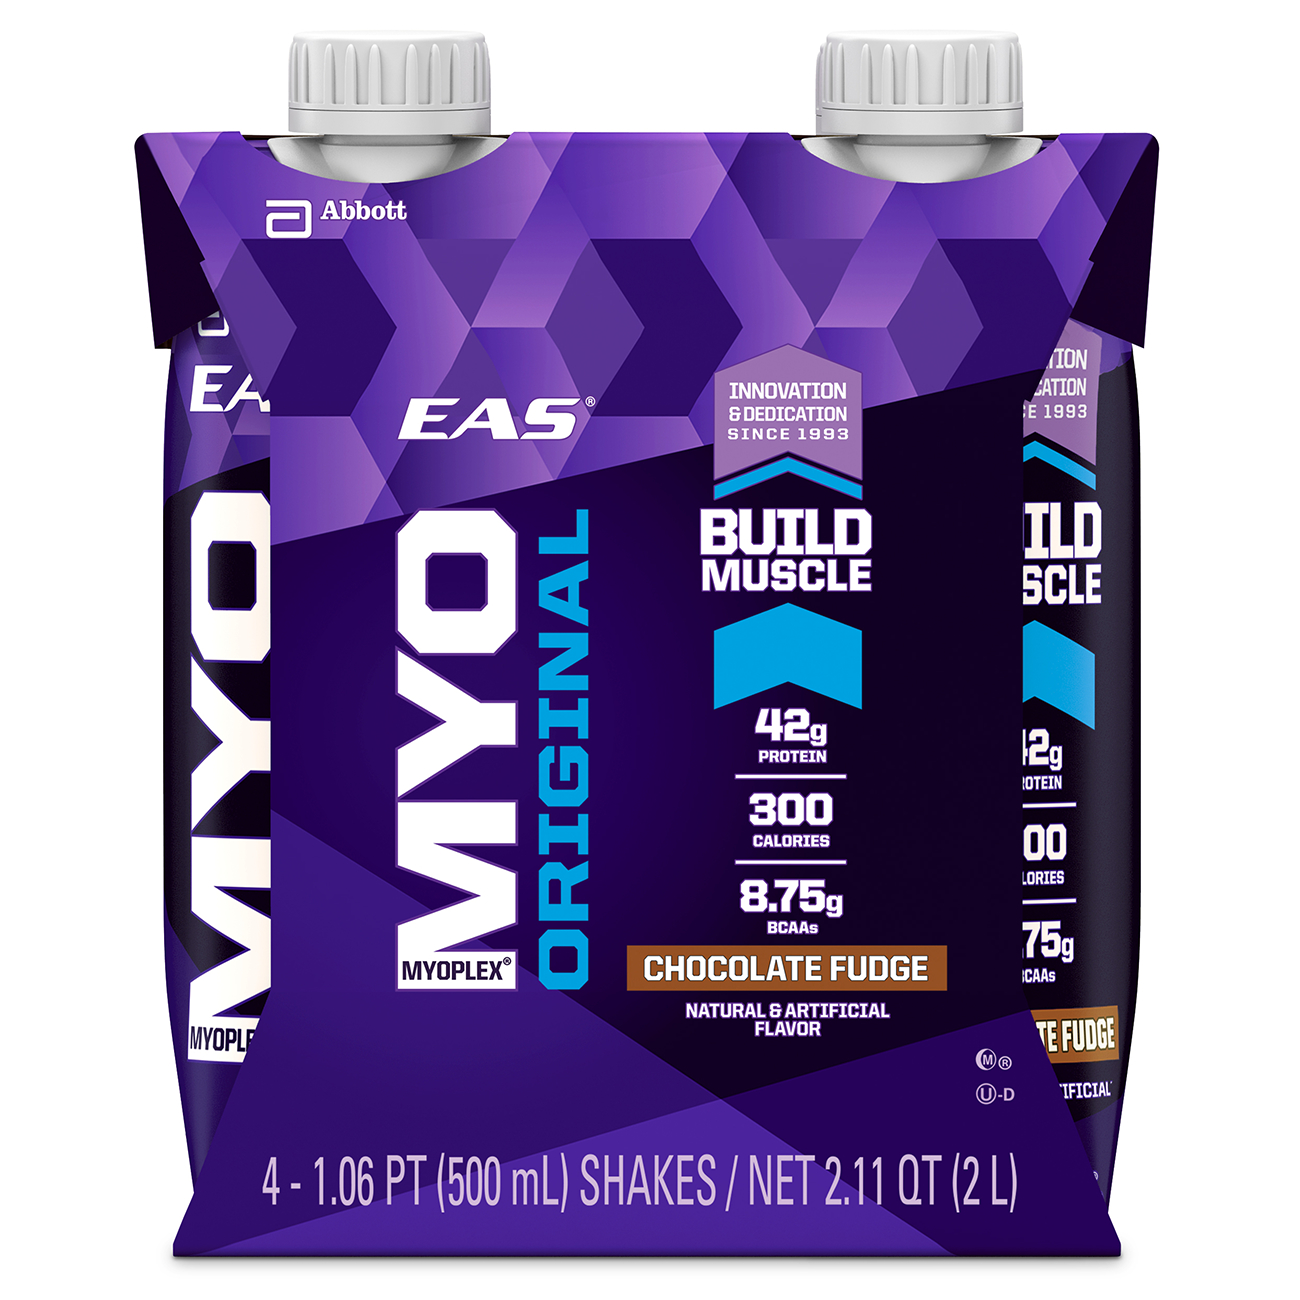 EAS Myoplex Original Ready-to-Drink Nutrition Shake, Chocolate Fudge, 500 mL (3-4 Packs) by Abbott Nutrition